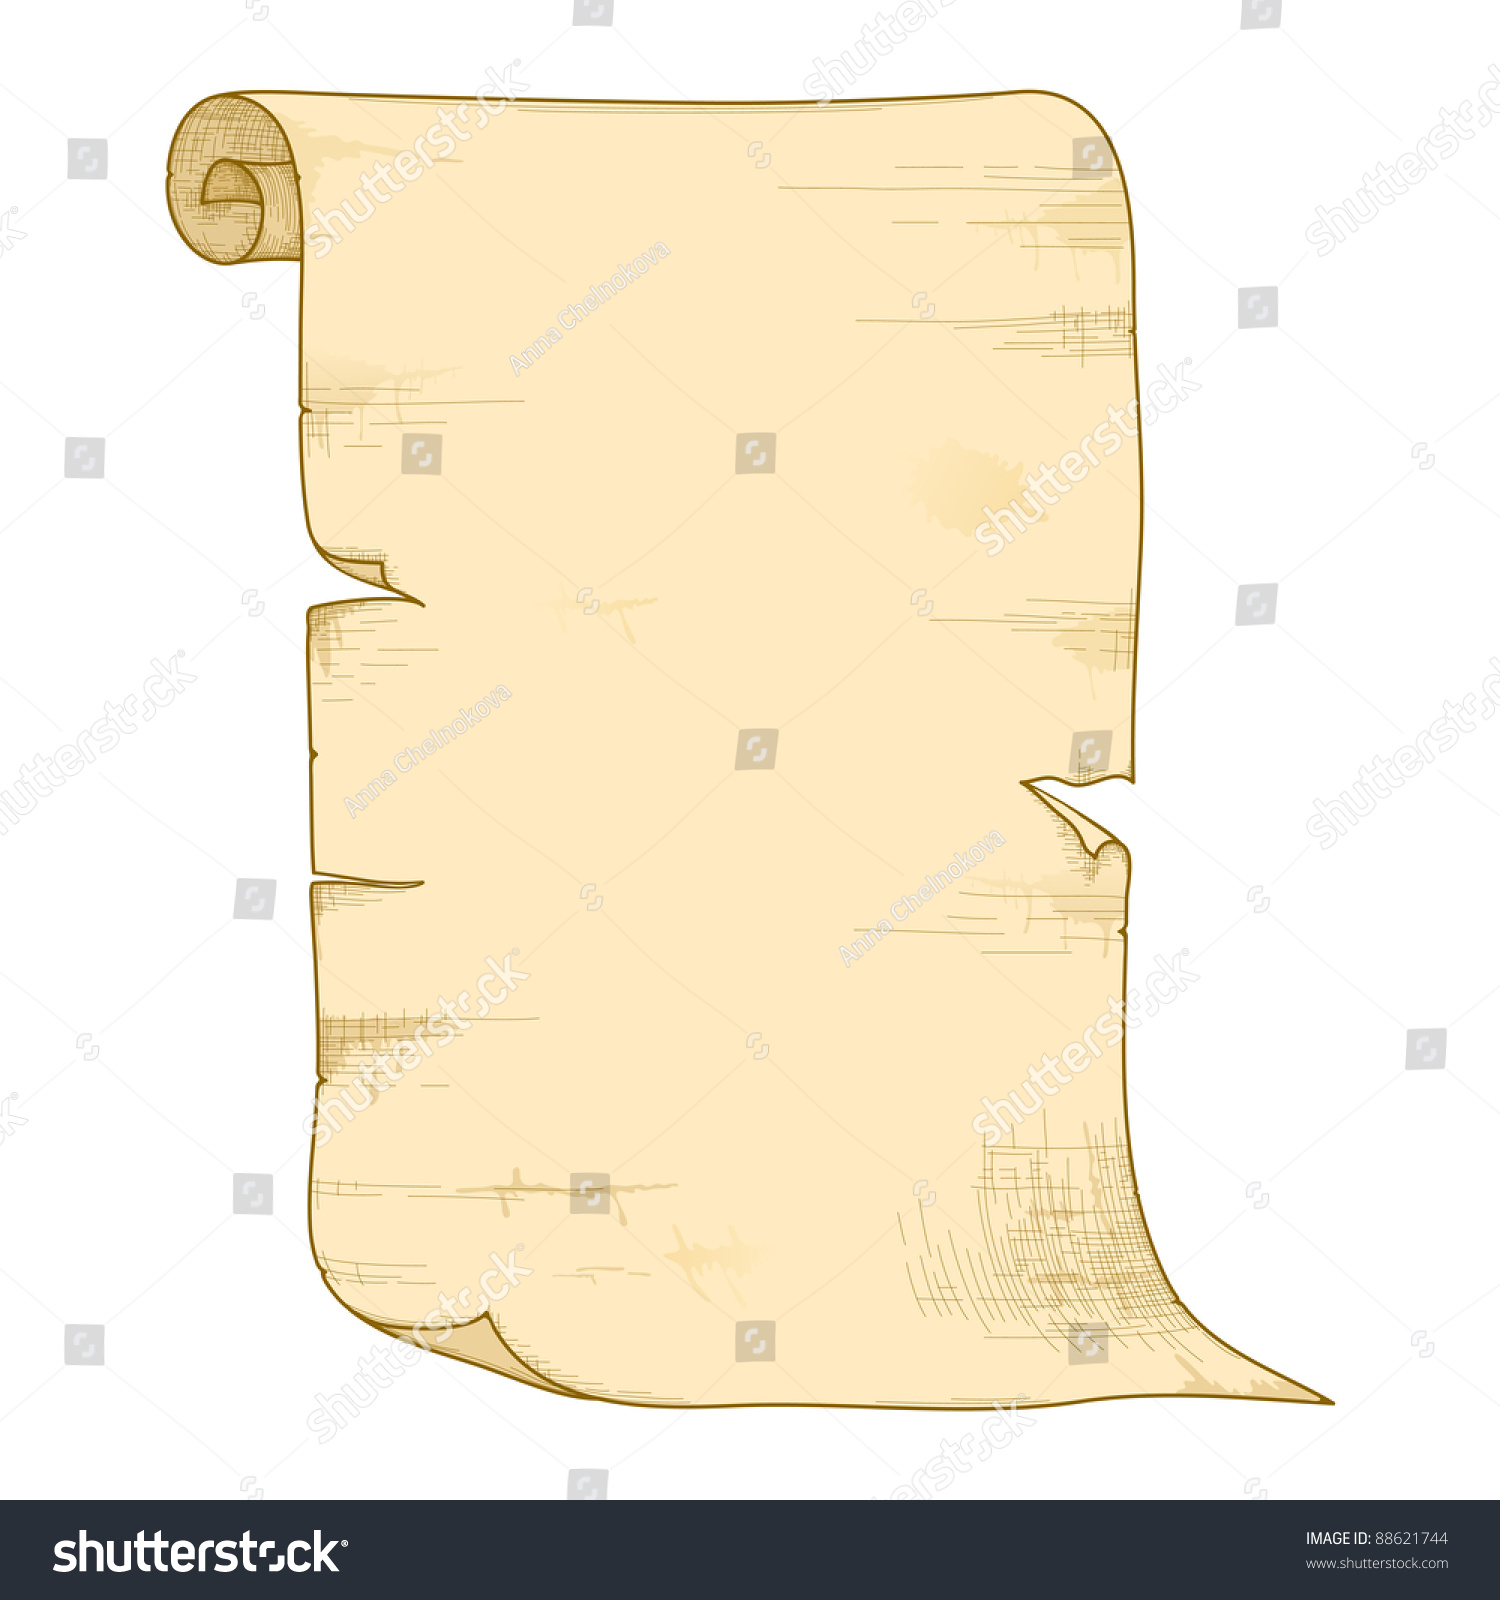 Vector Illustration Of Old Paper Roll Isolated On White ...  Old